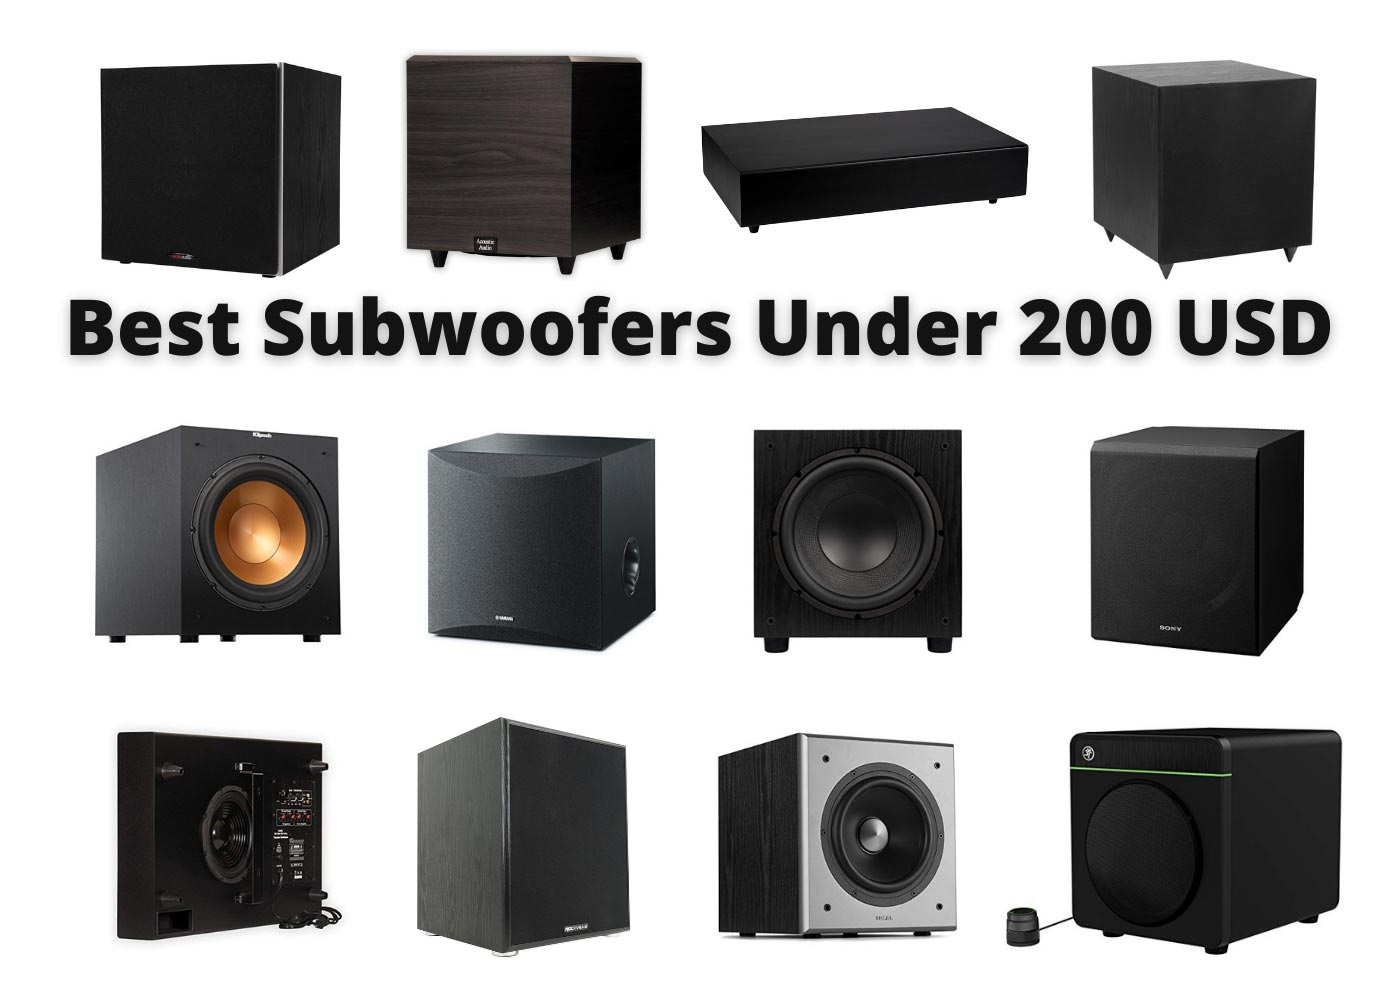 Best Subwoofers Under 200 USD – Reviews & Buyers Guide